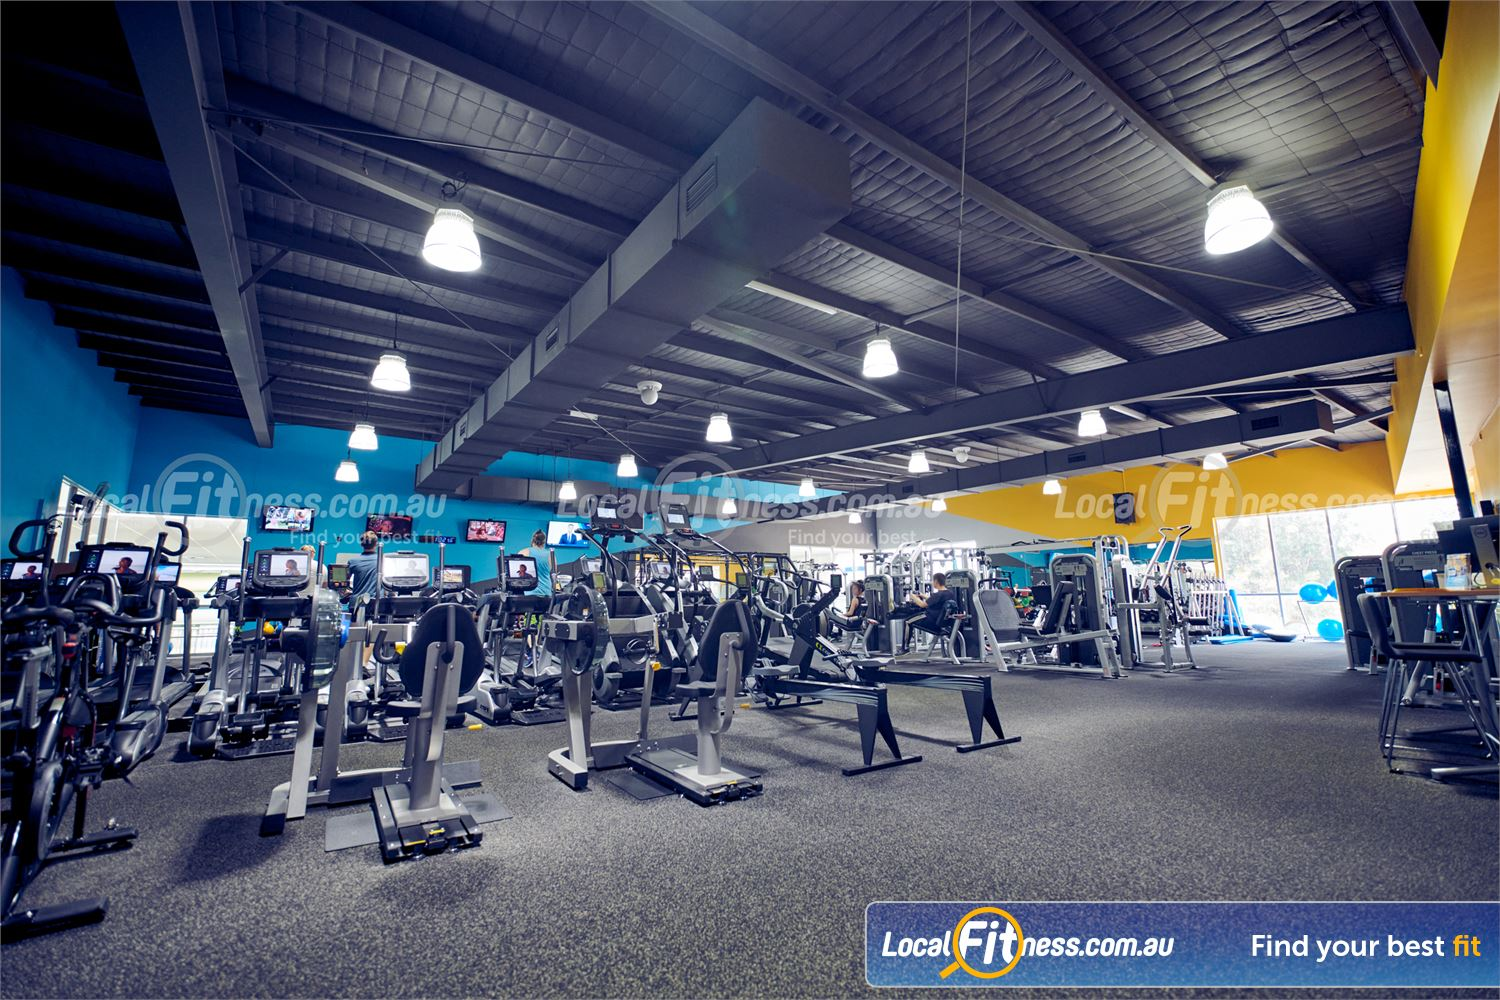 Knox Leisureworks Boronia Welcome to the fully equipped Lower Boronia gym at Knox.